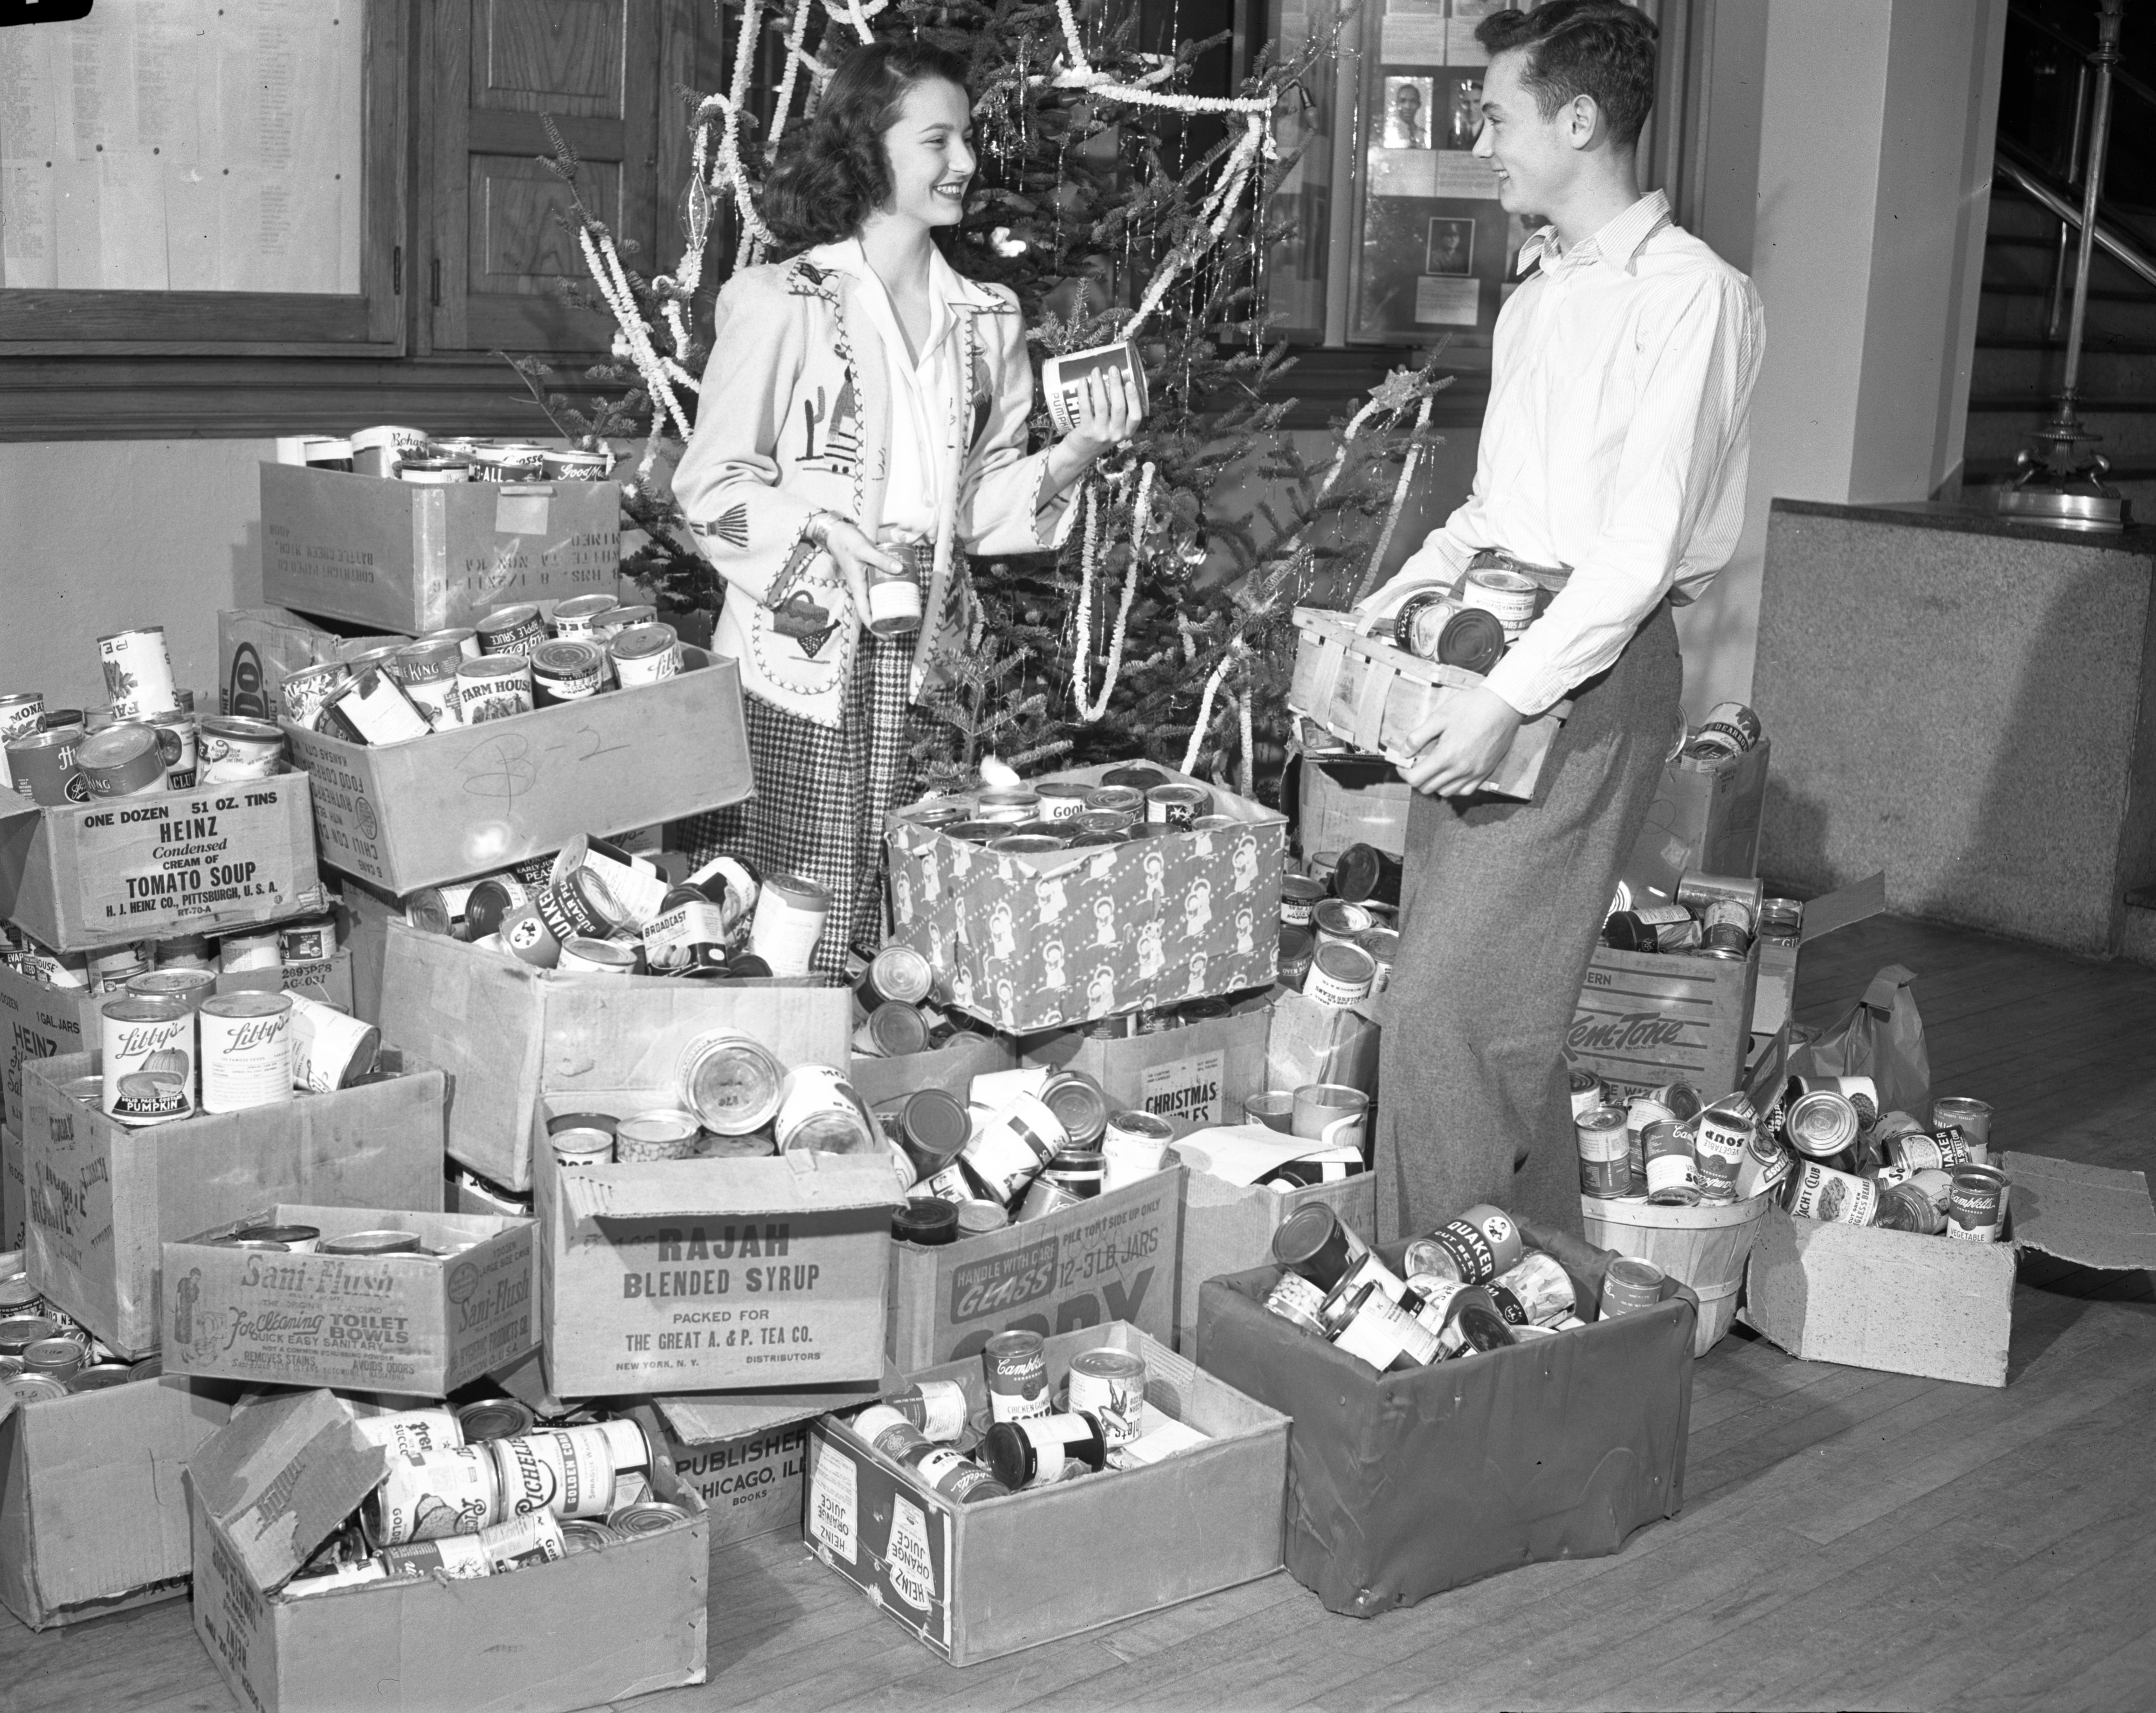 Ann Arbor High School students Catherine Warren and David West gather canned goods for needy, December 1945 image